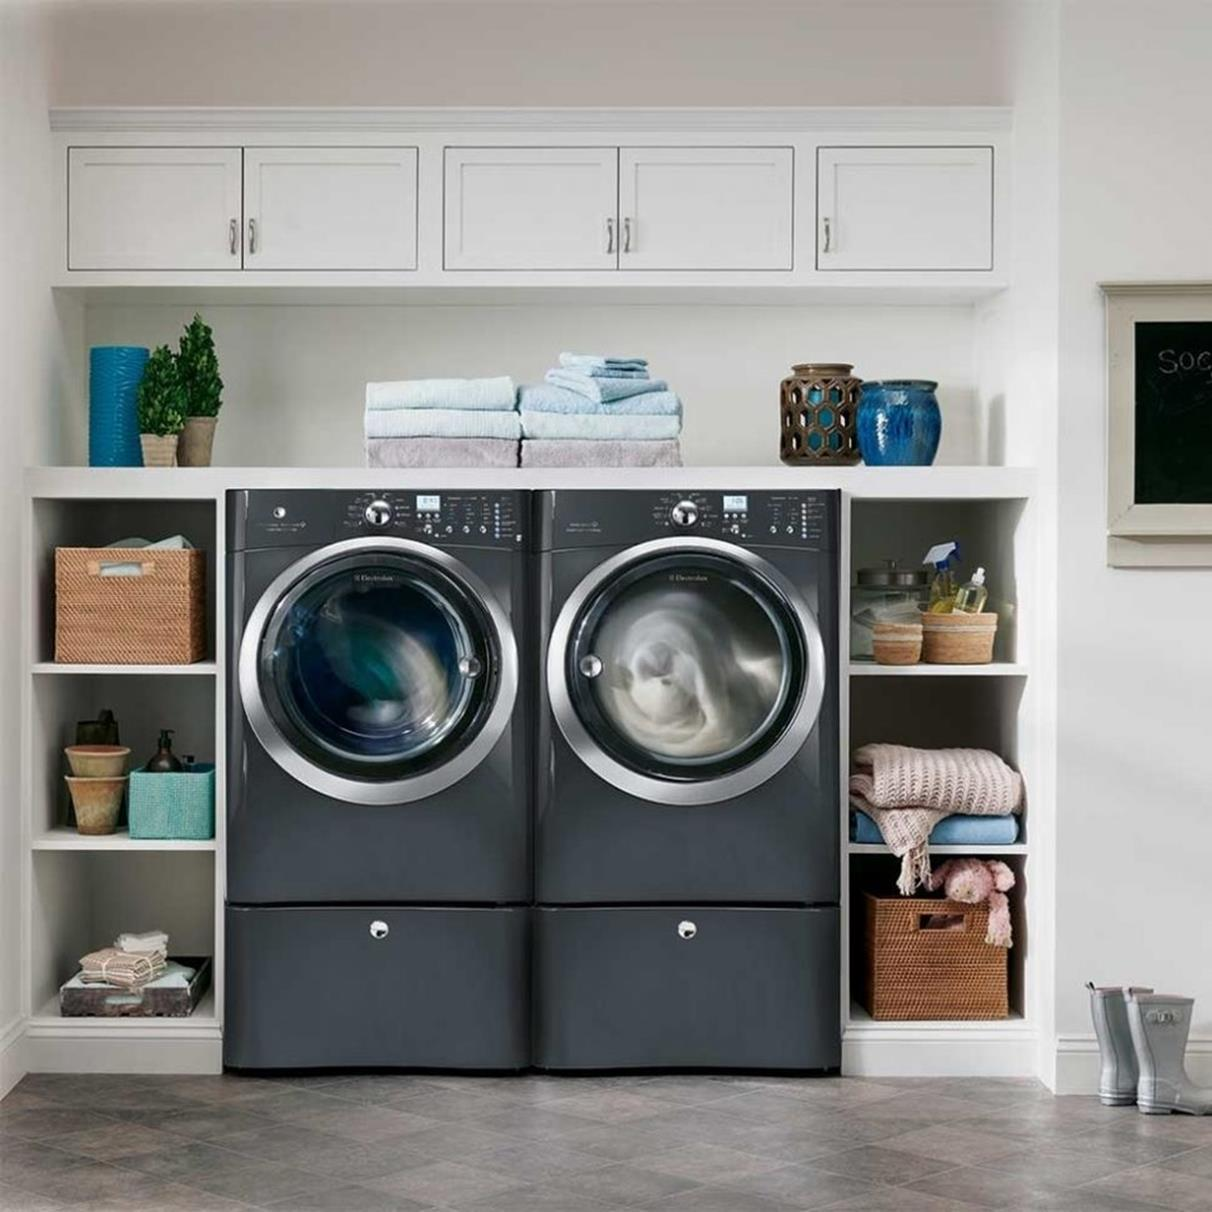 Best Cheap IKEA Cabinets Laundry Room Storage Ideas 36